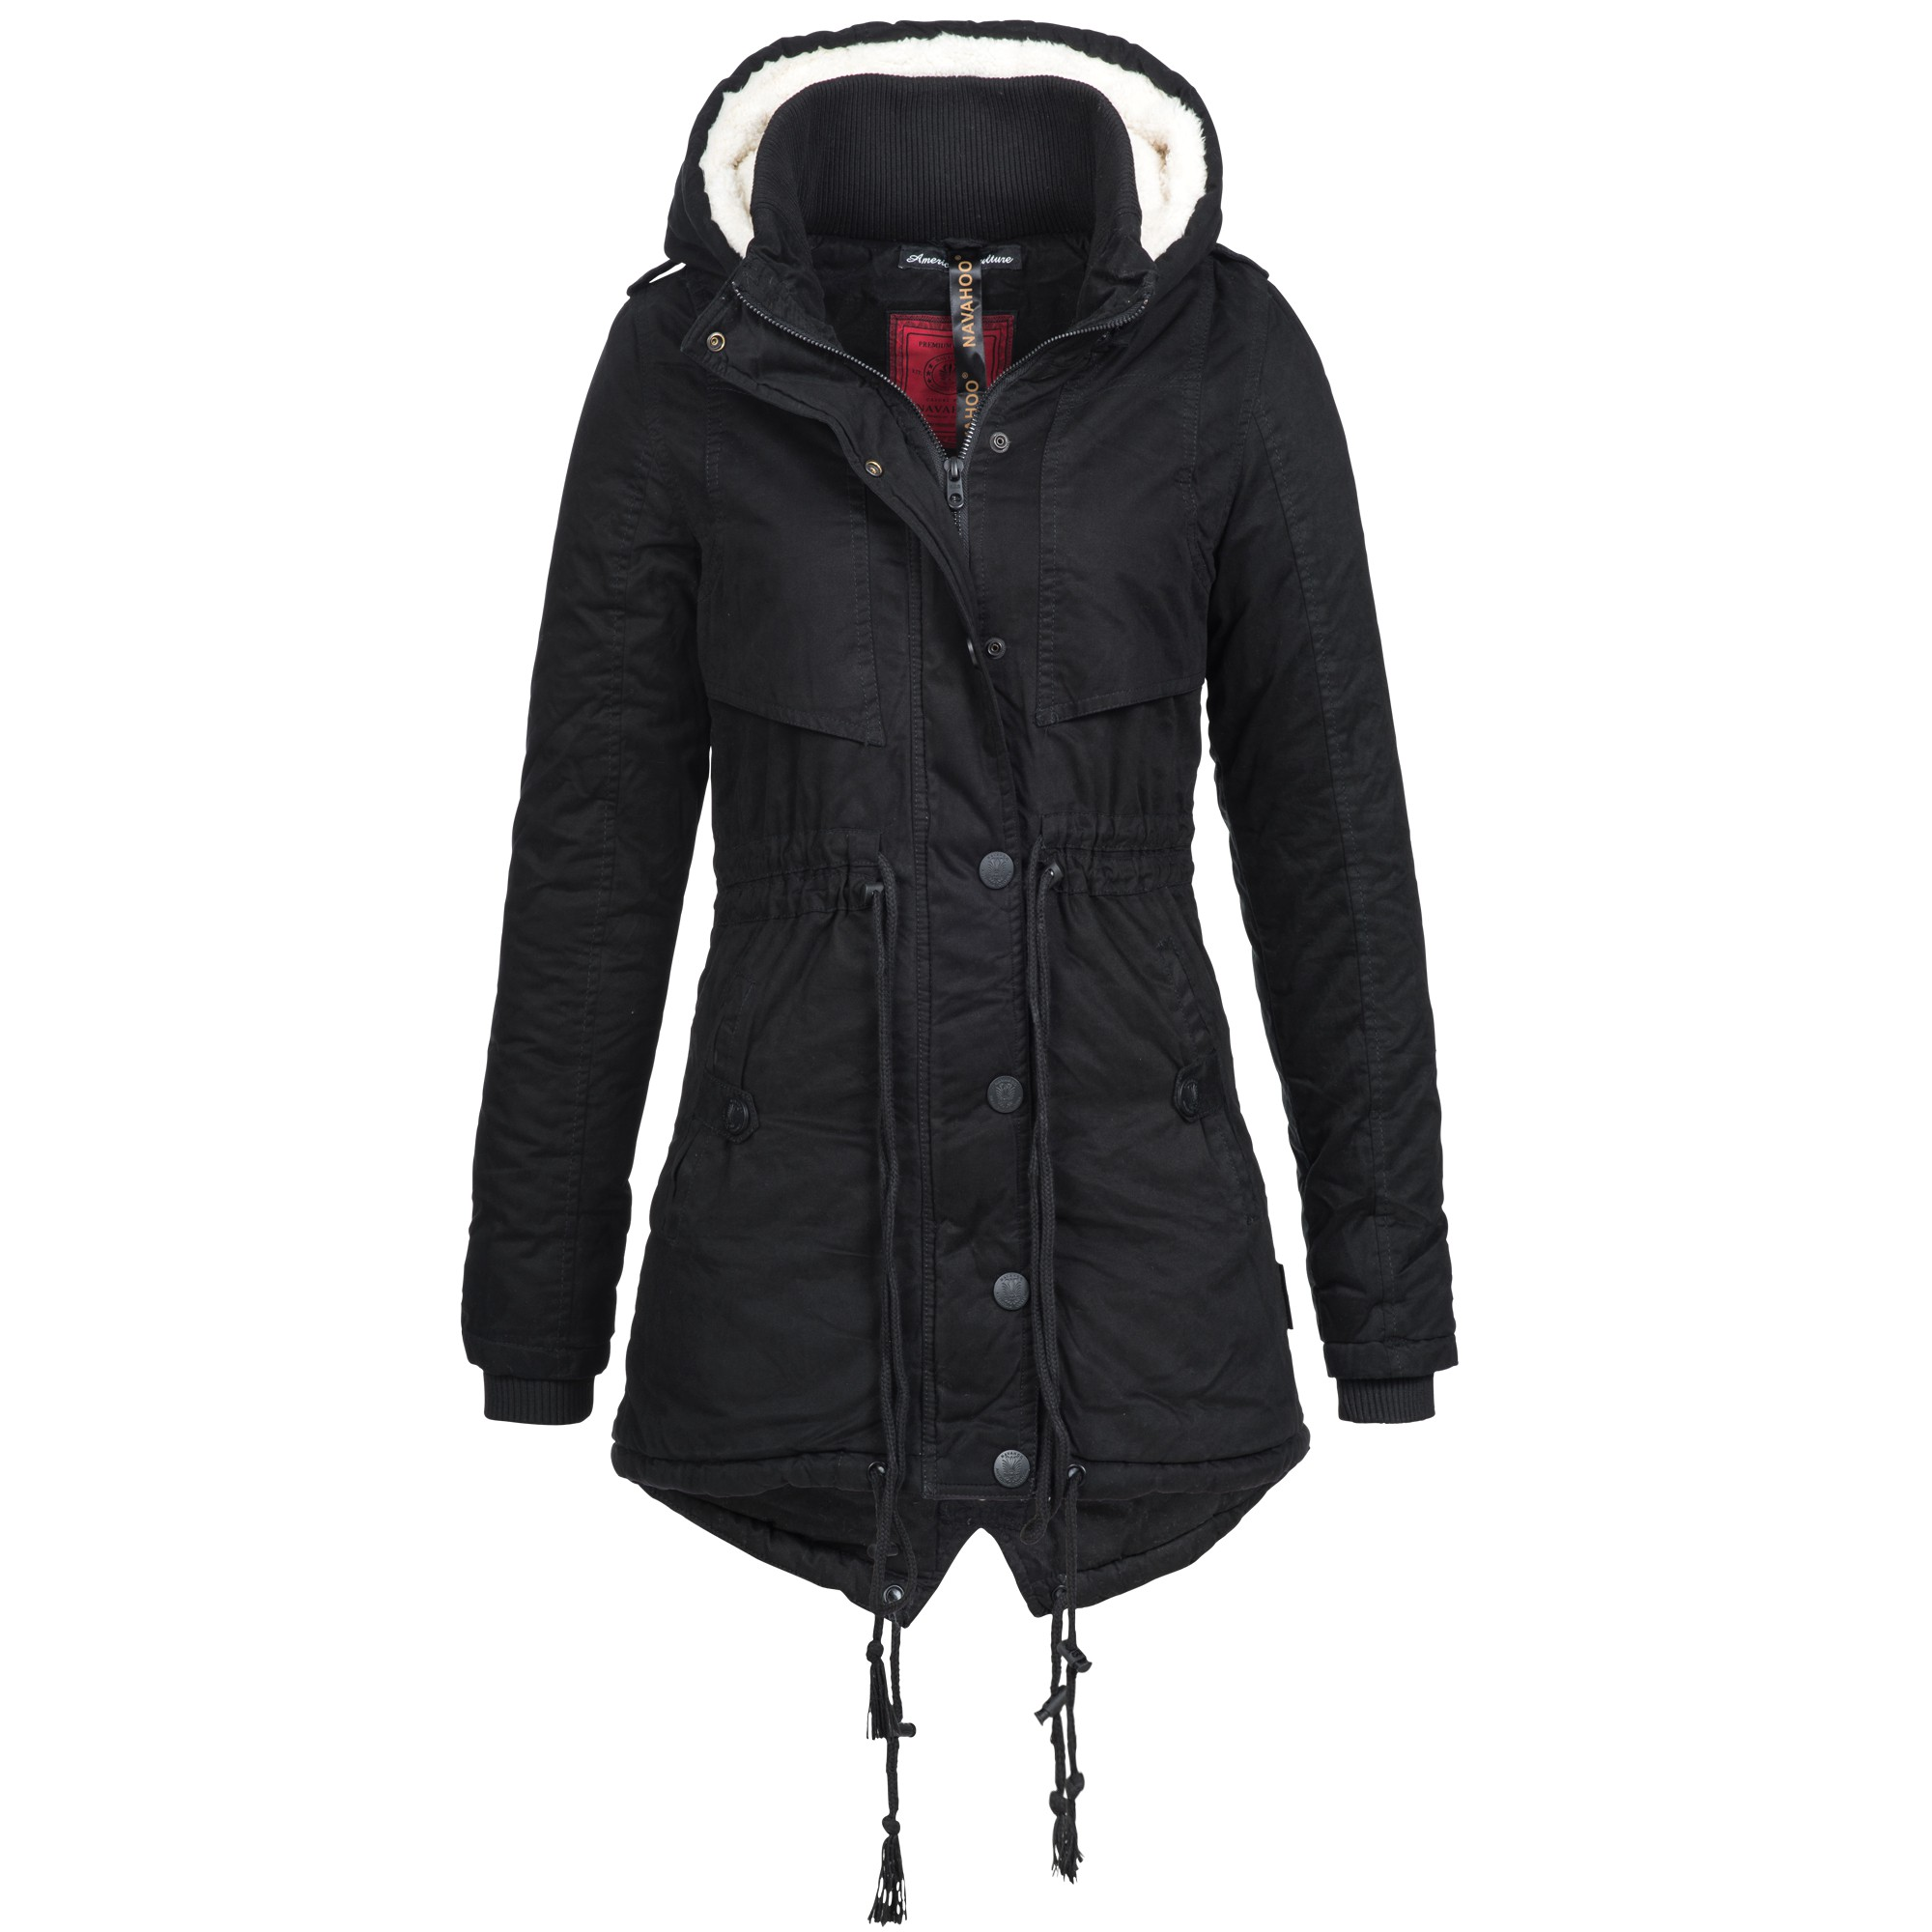 navahoo valentina damen jacke parka mantel winterjacke lang warm gef ttert ebay. Black Bedroom Furniture Sets. Home Design Ideas